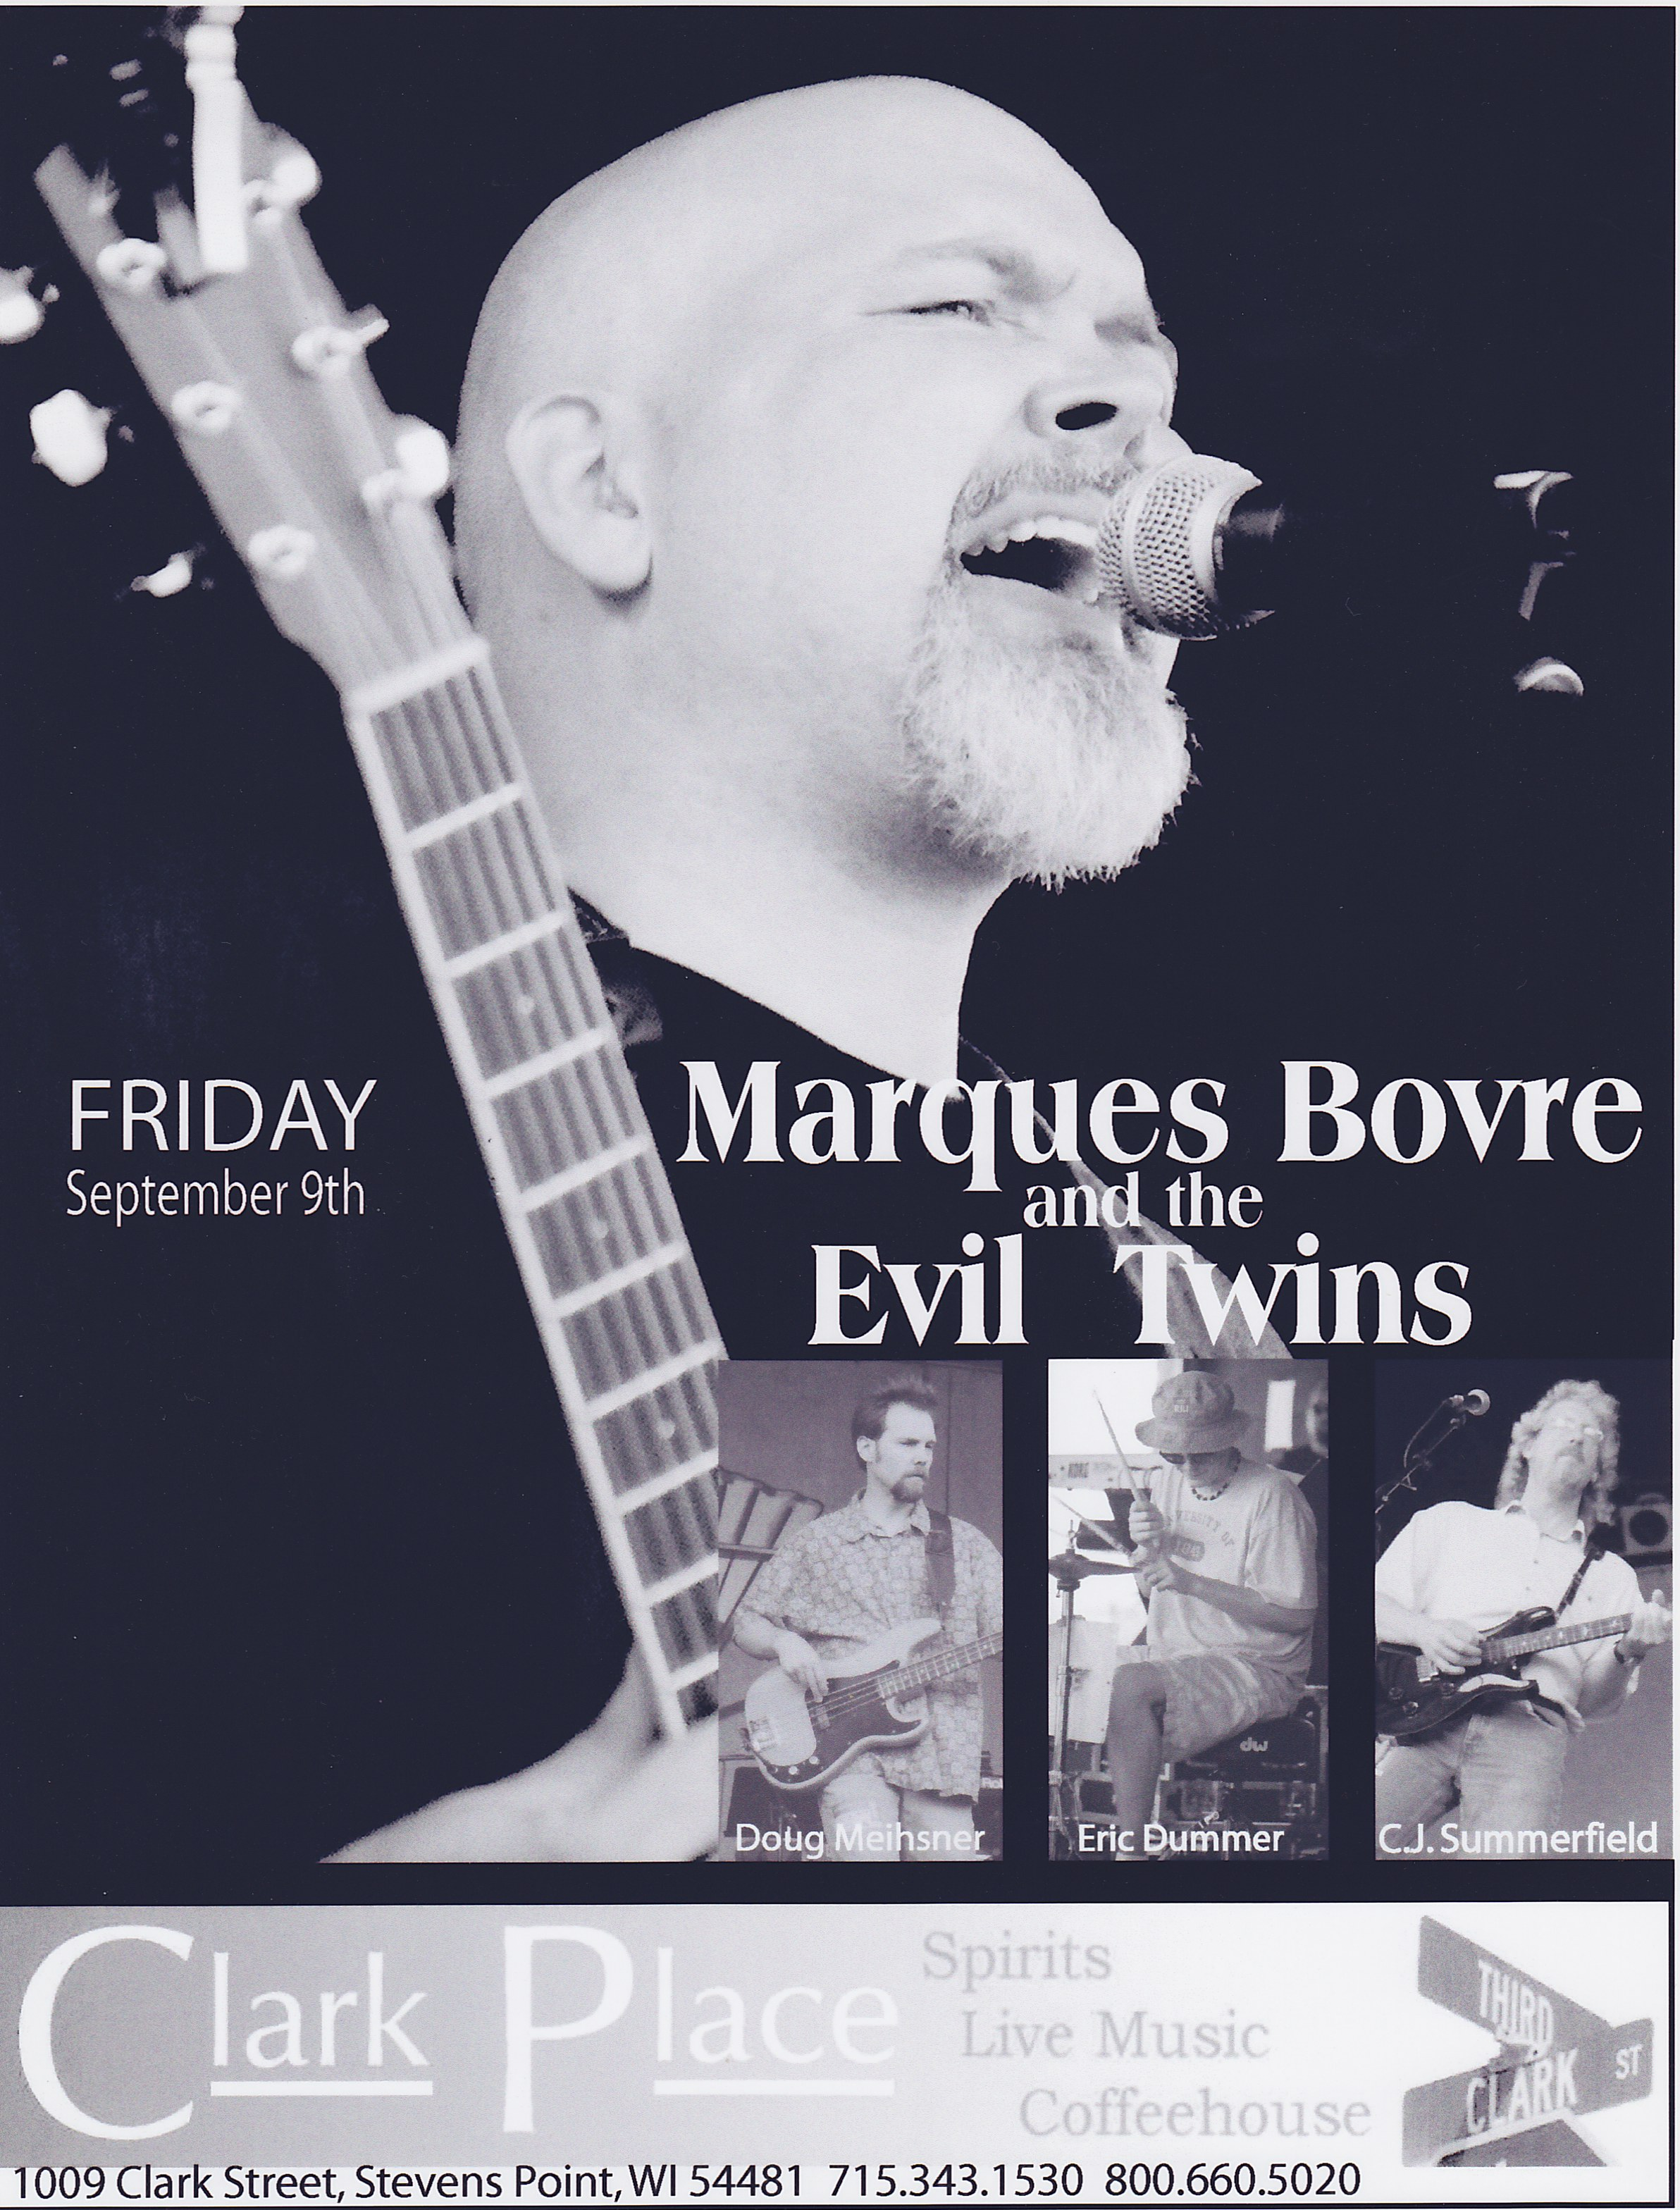 Marques Bovre and the Evil Twins, September 9, 2005